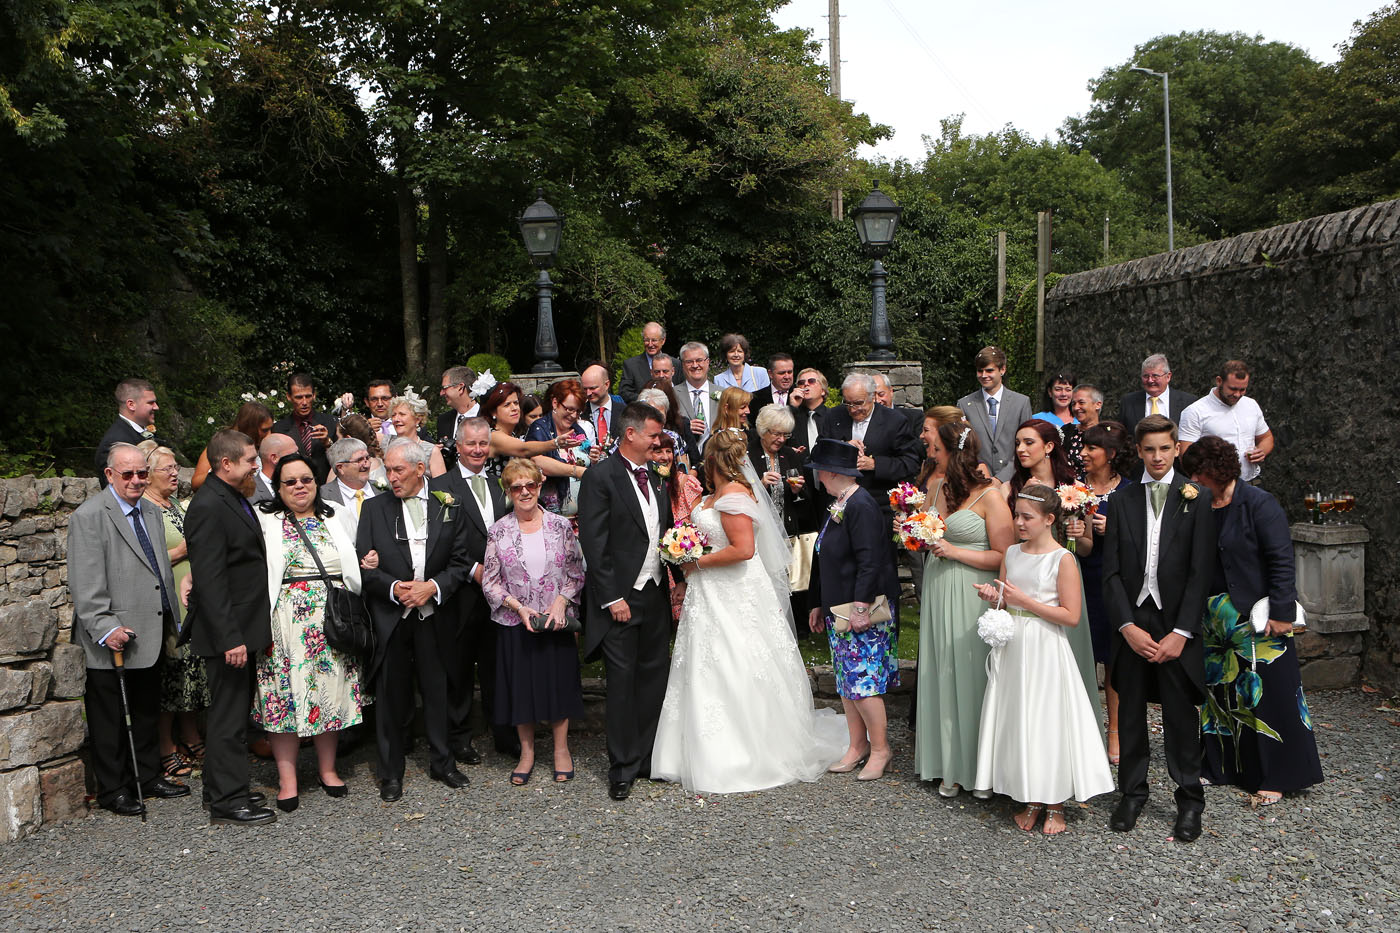 SteveHillman Wedding Photography Andrea And Graham Married At Chequers Hotel Dalton In Furness